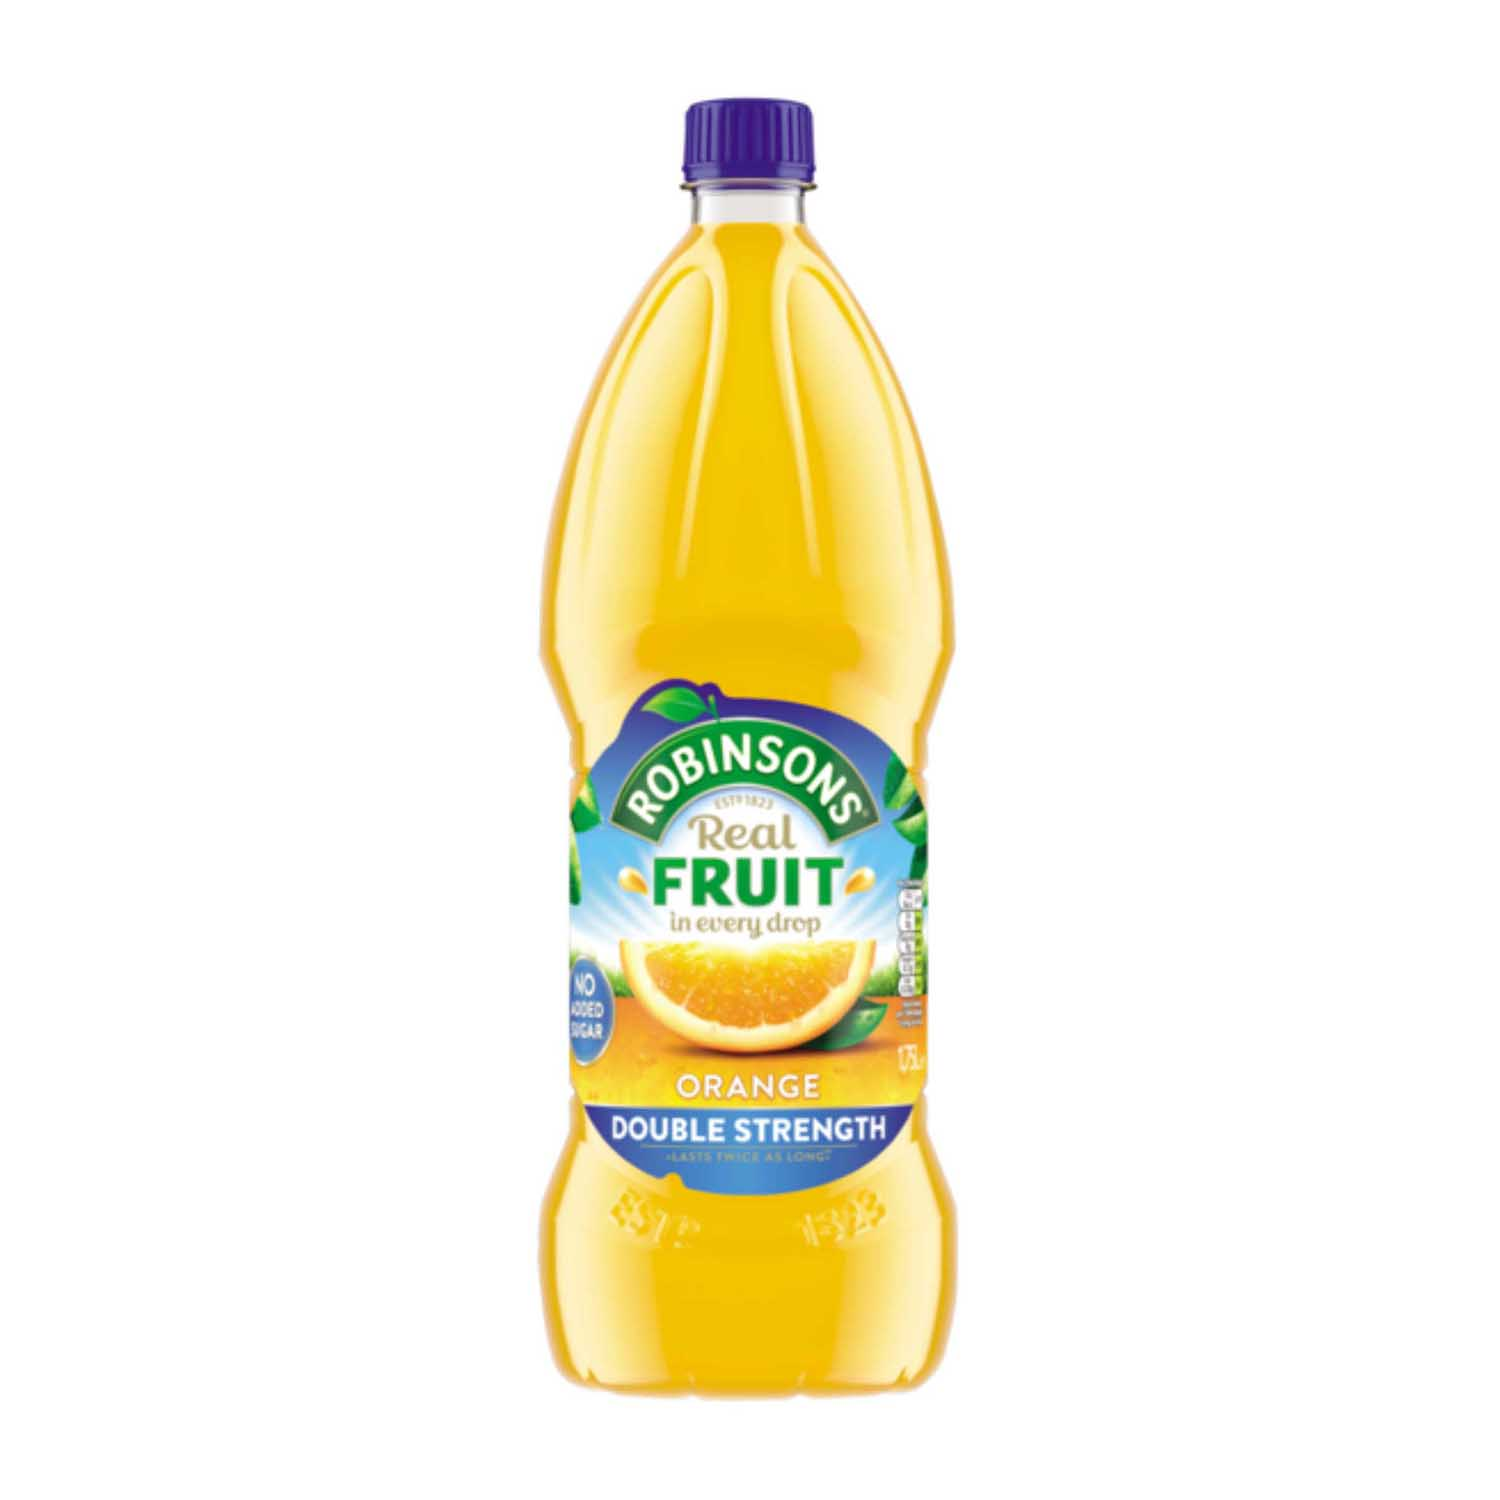 Robinsons Squash Double Concentrate No Added Sugar 1.75 Litres Orange Ref 200659 Pack 2